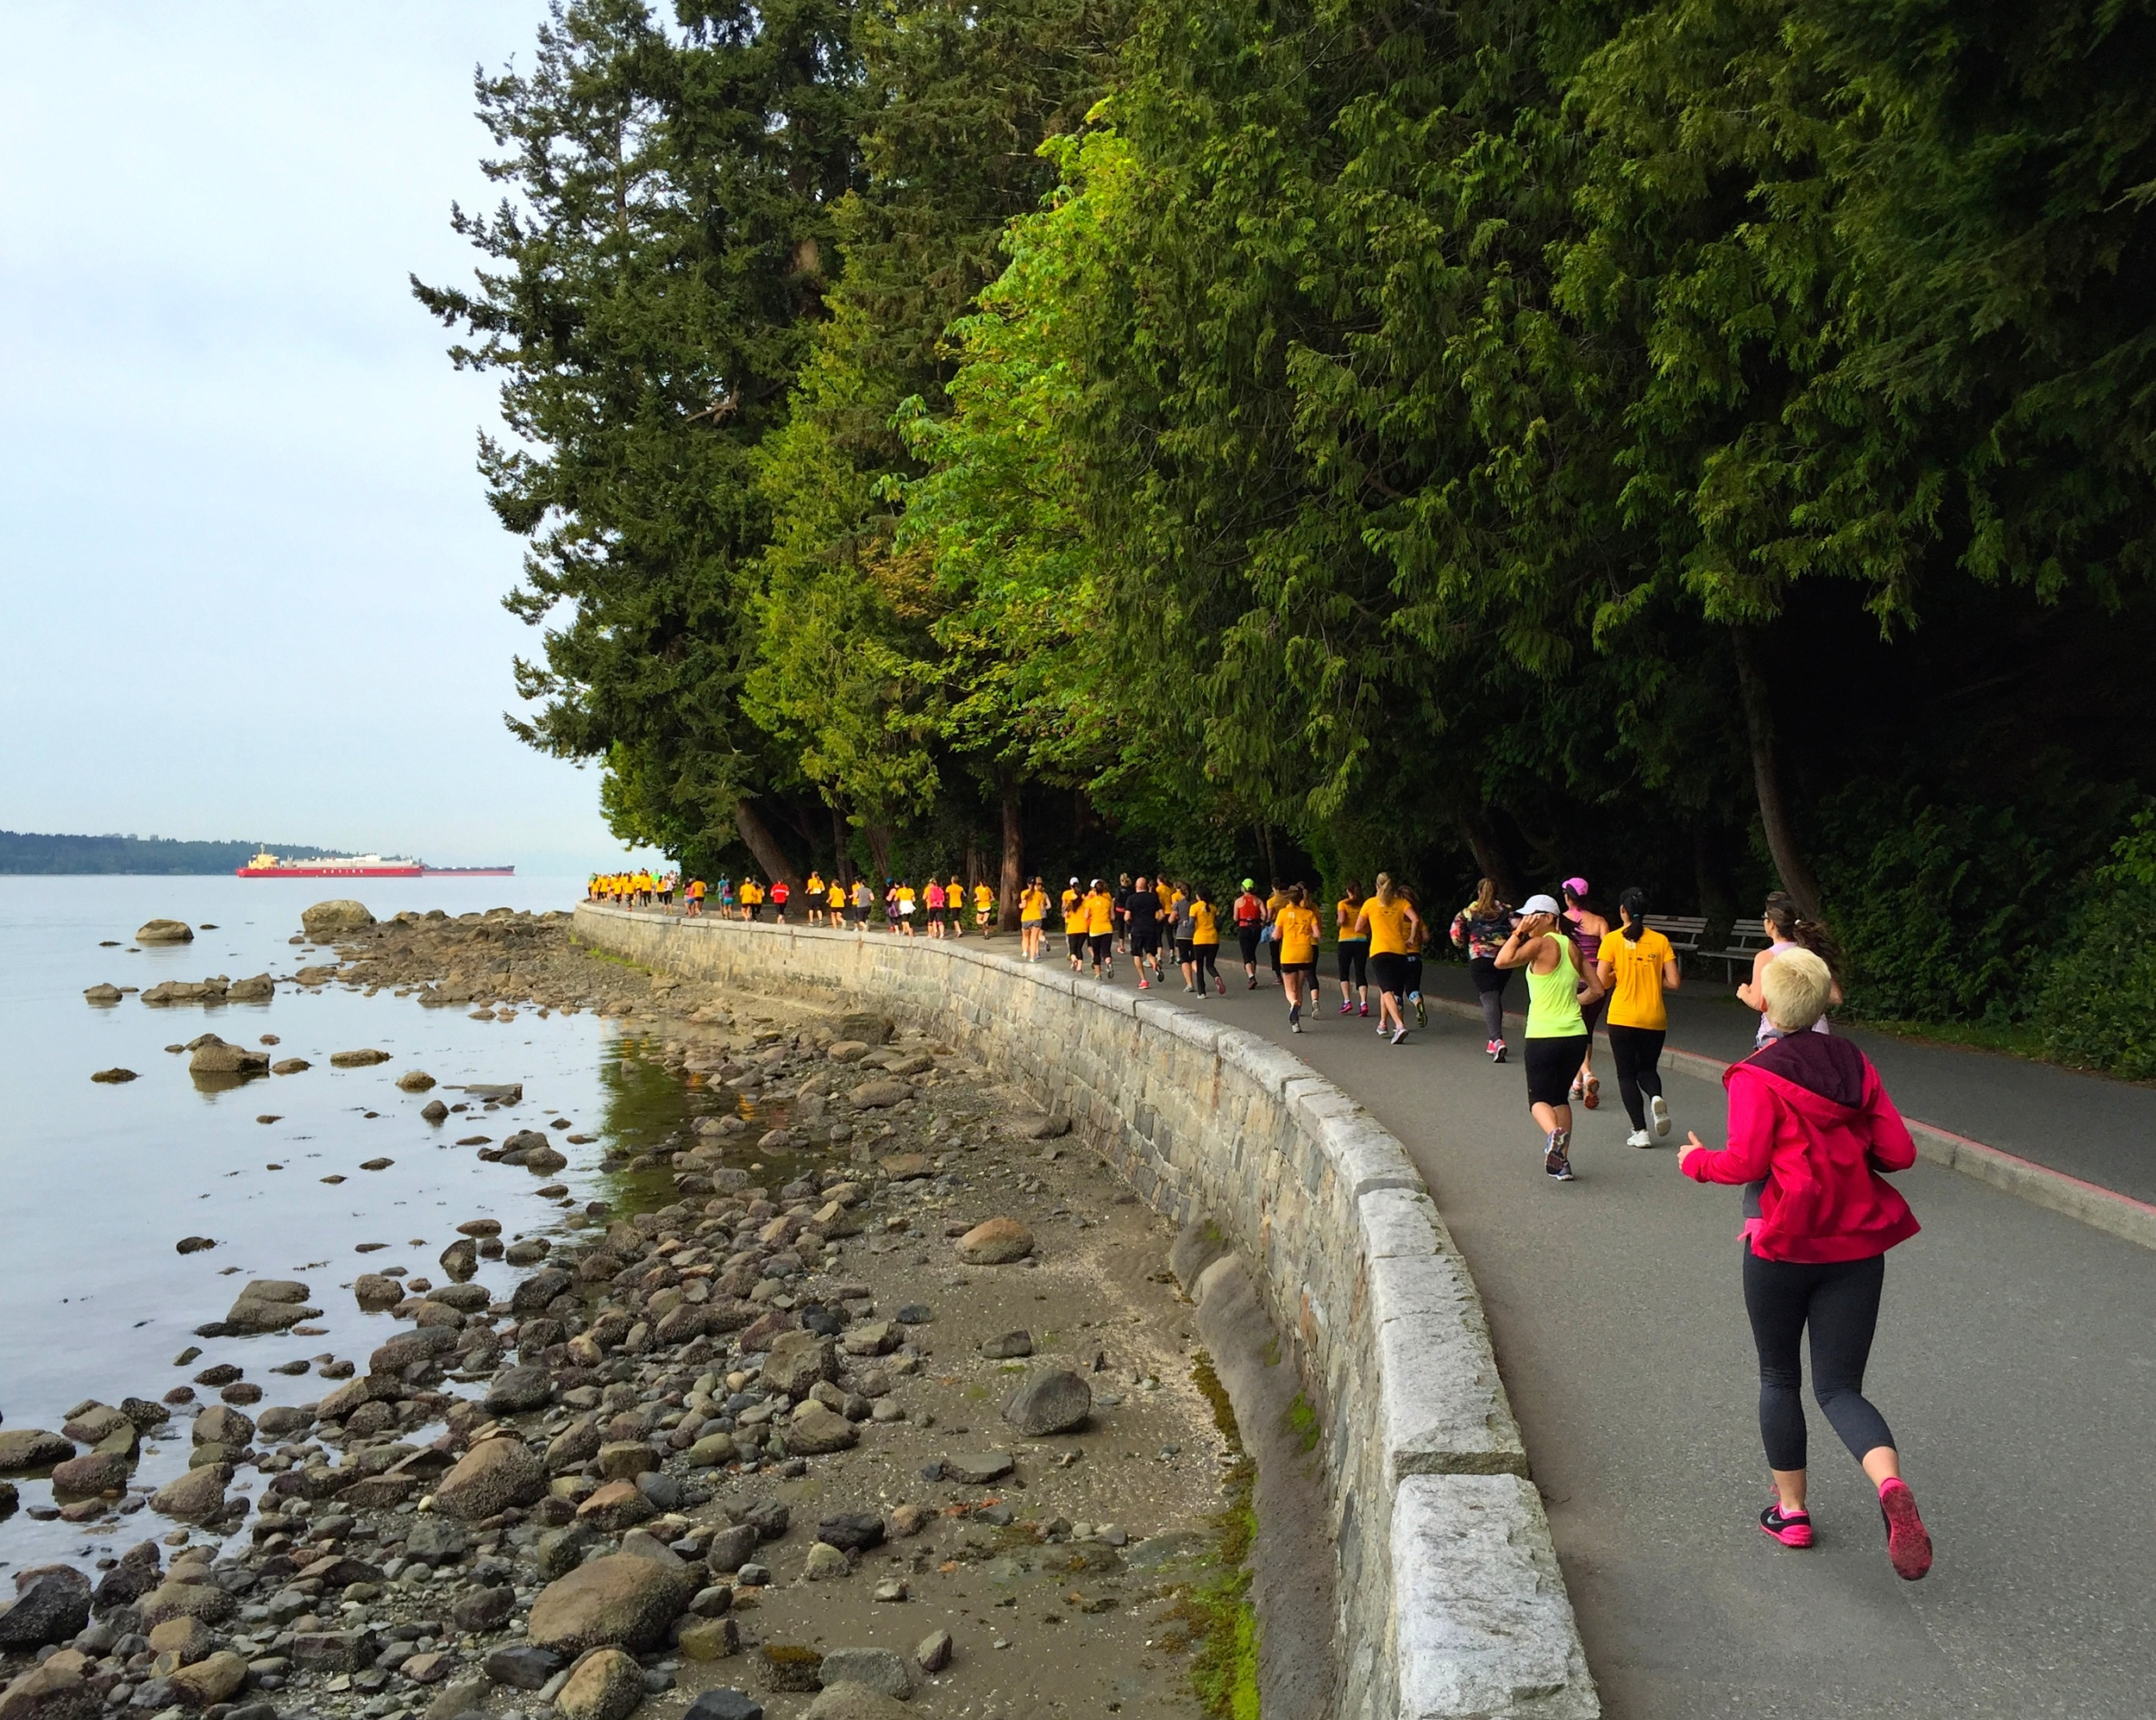 The entire run meanderedalongside the Pacific Ocean on the Stanley Park Seawall.